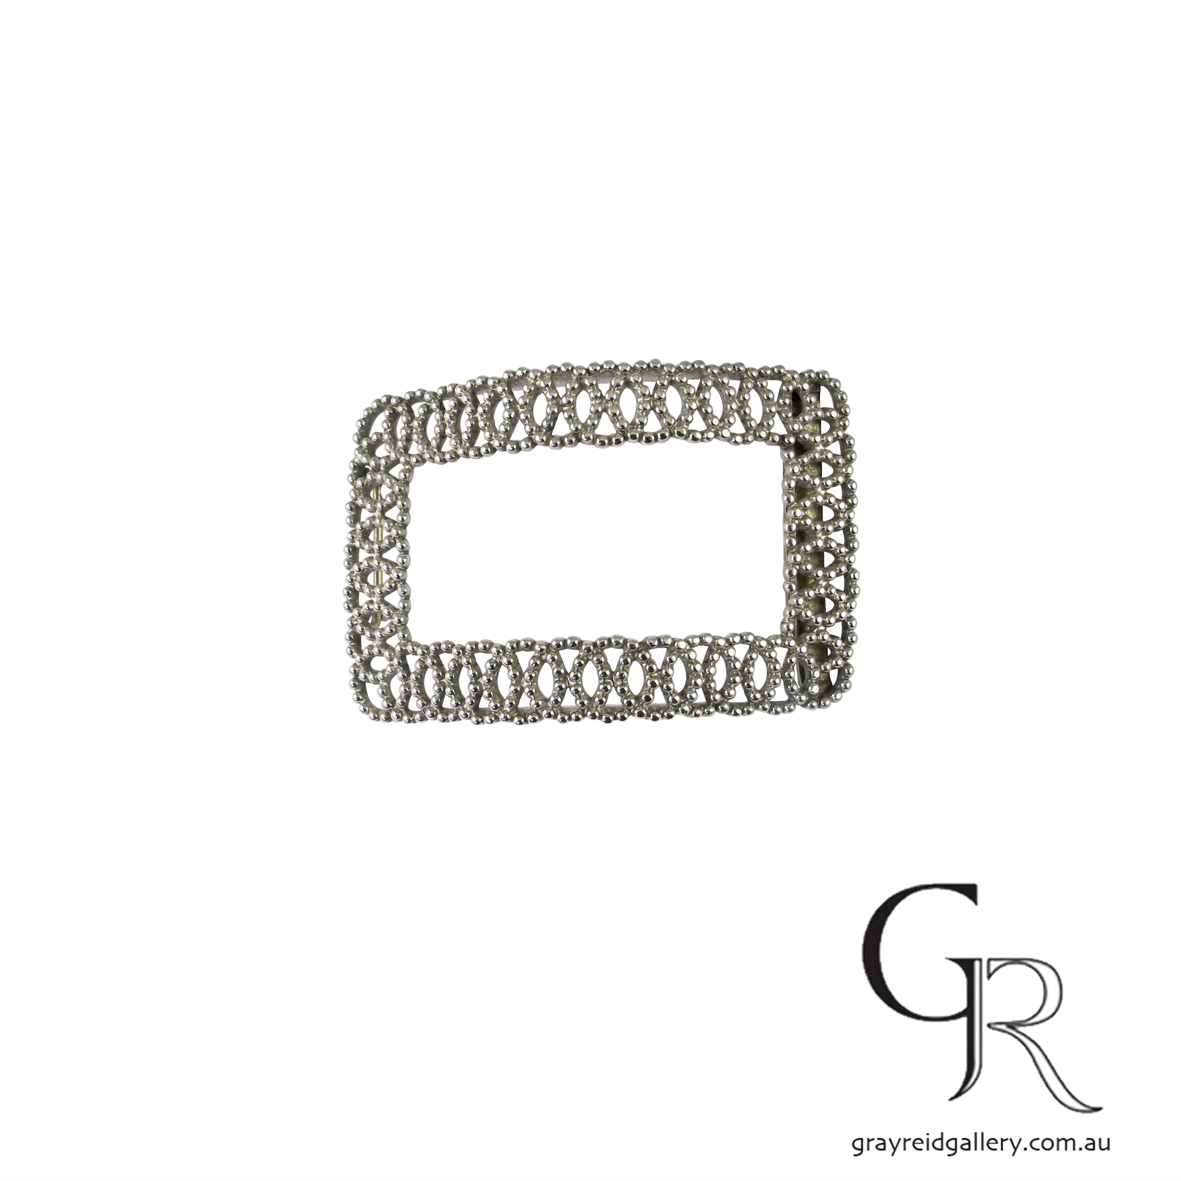 antiques and collectables melbourne sterling silver belt buckle Gray Reid Gallery 2.jpg